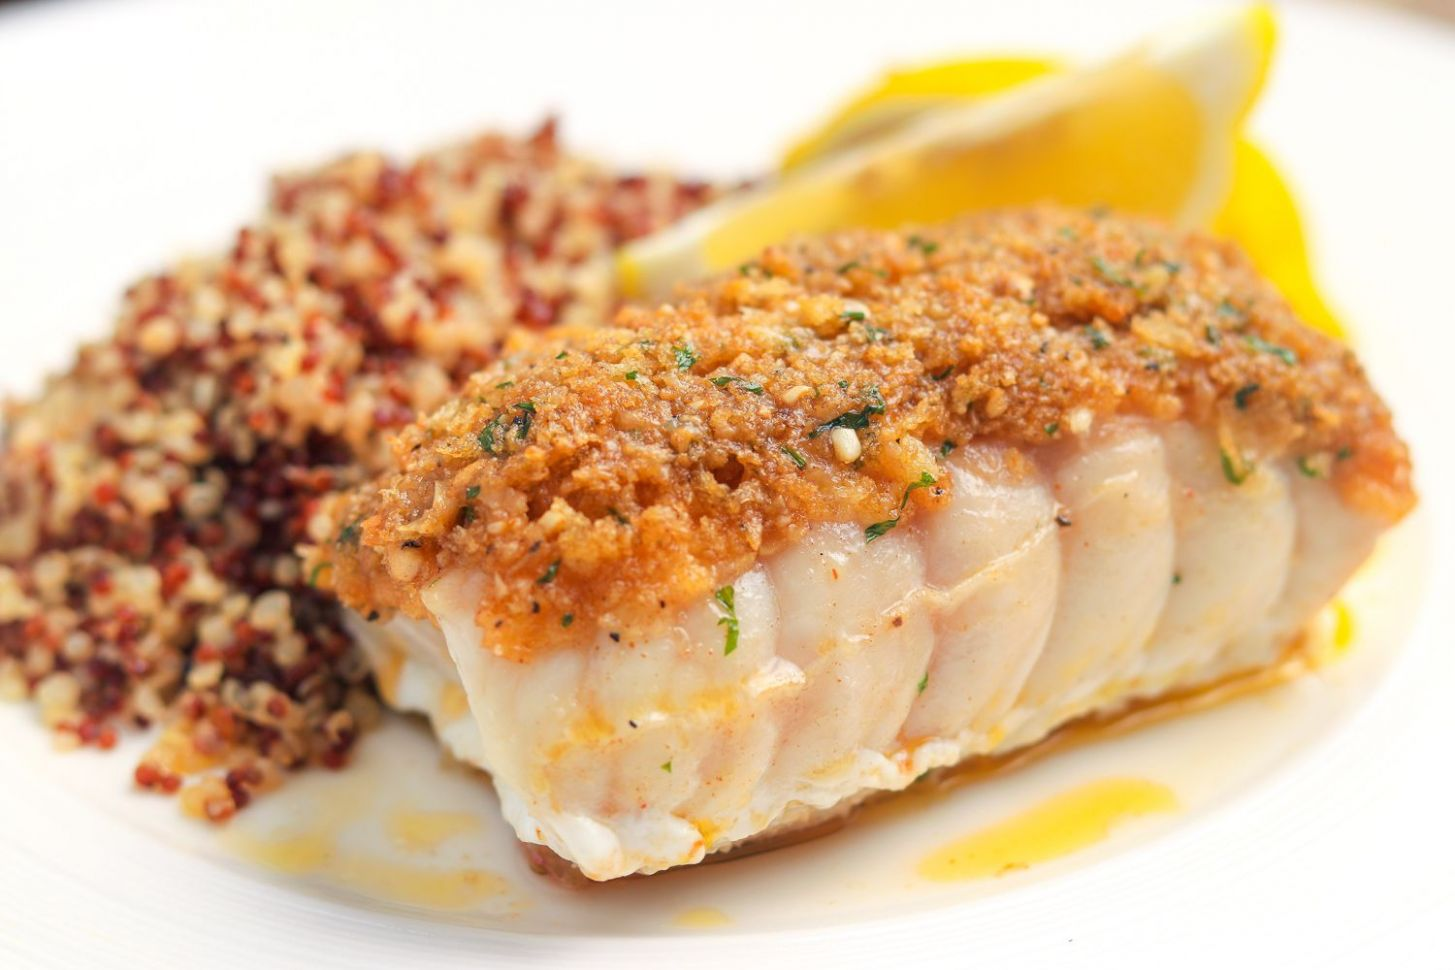 Baked Red Snapper With Garlic and Herbs Recipe - Fish Recipes Red Snapper